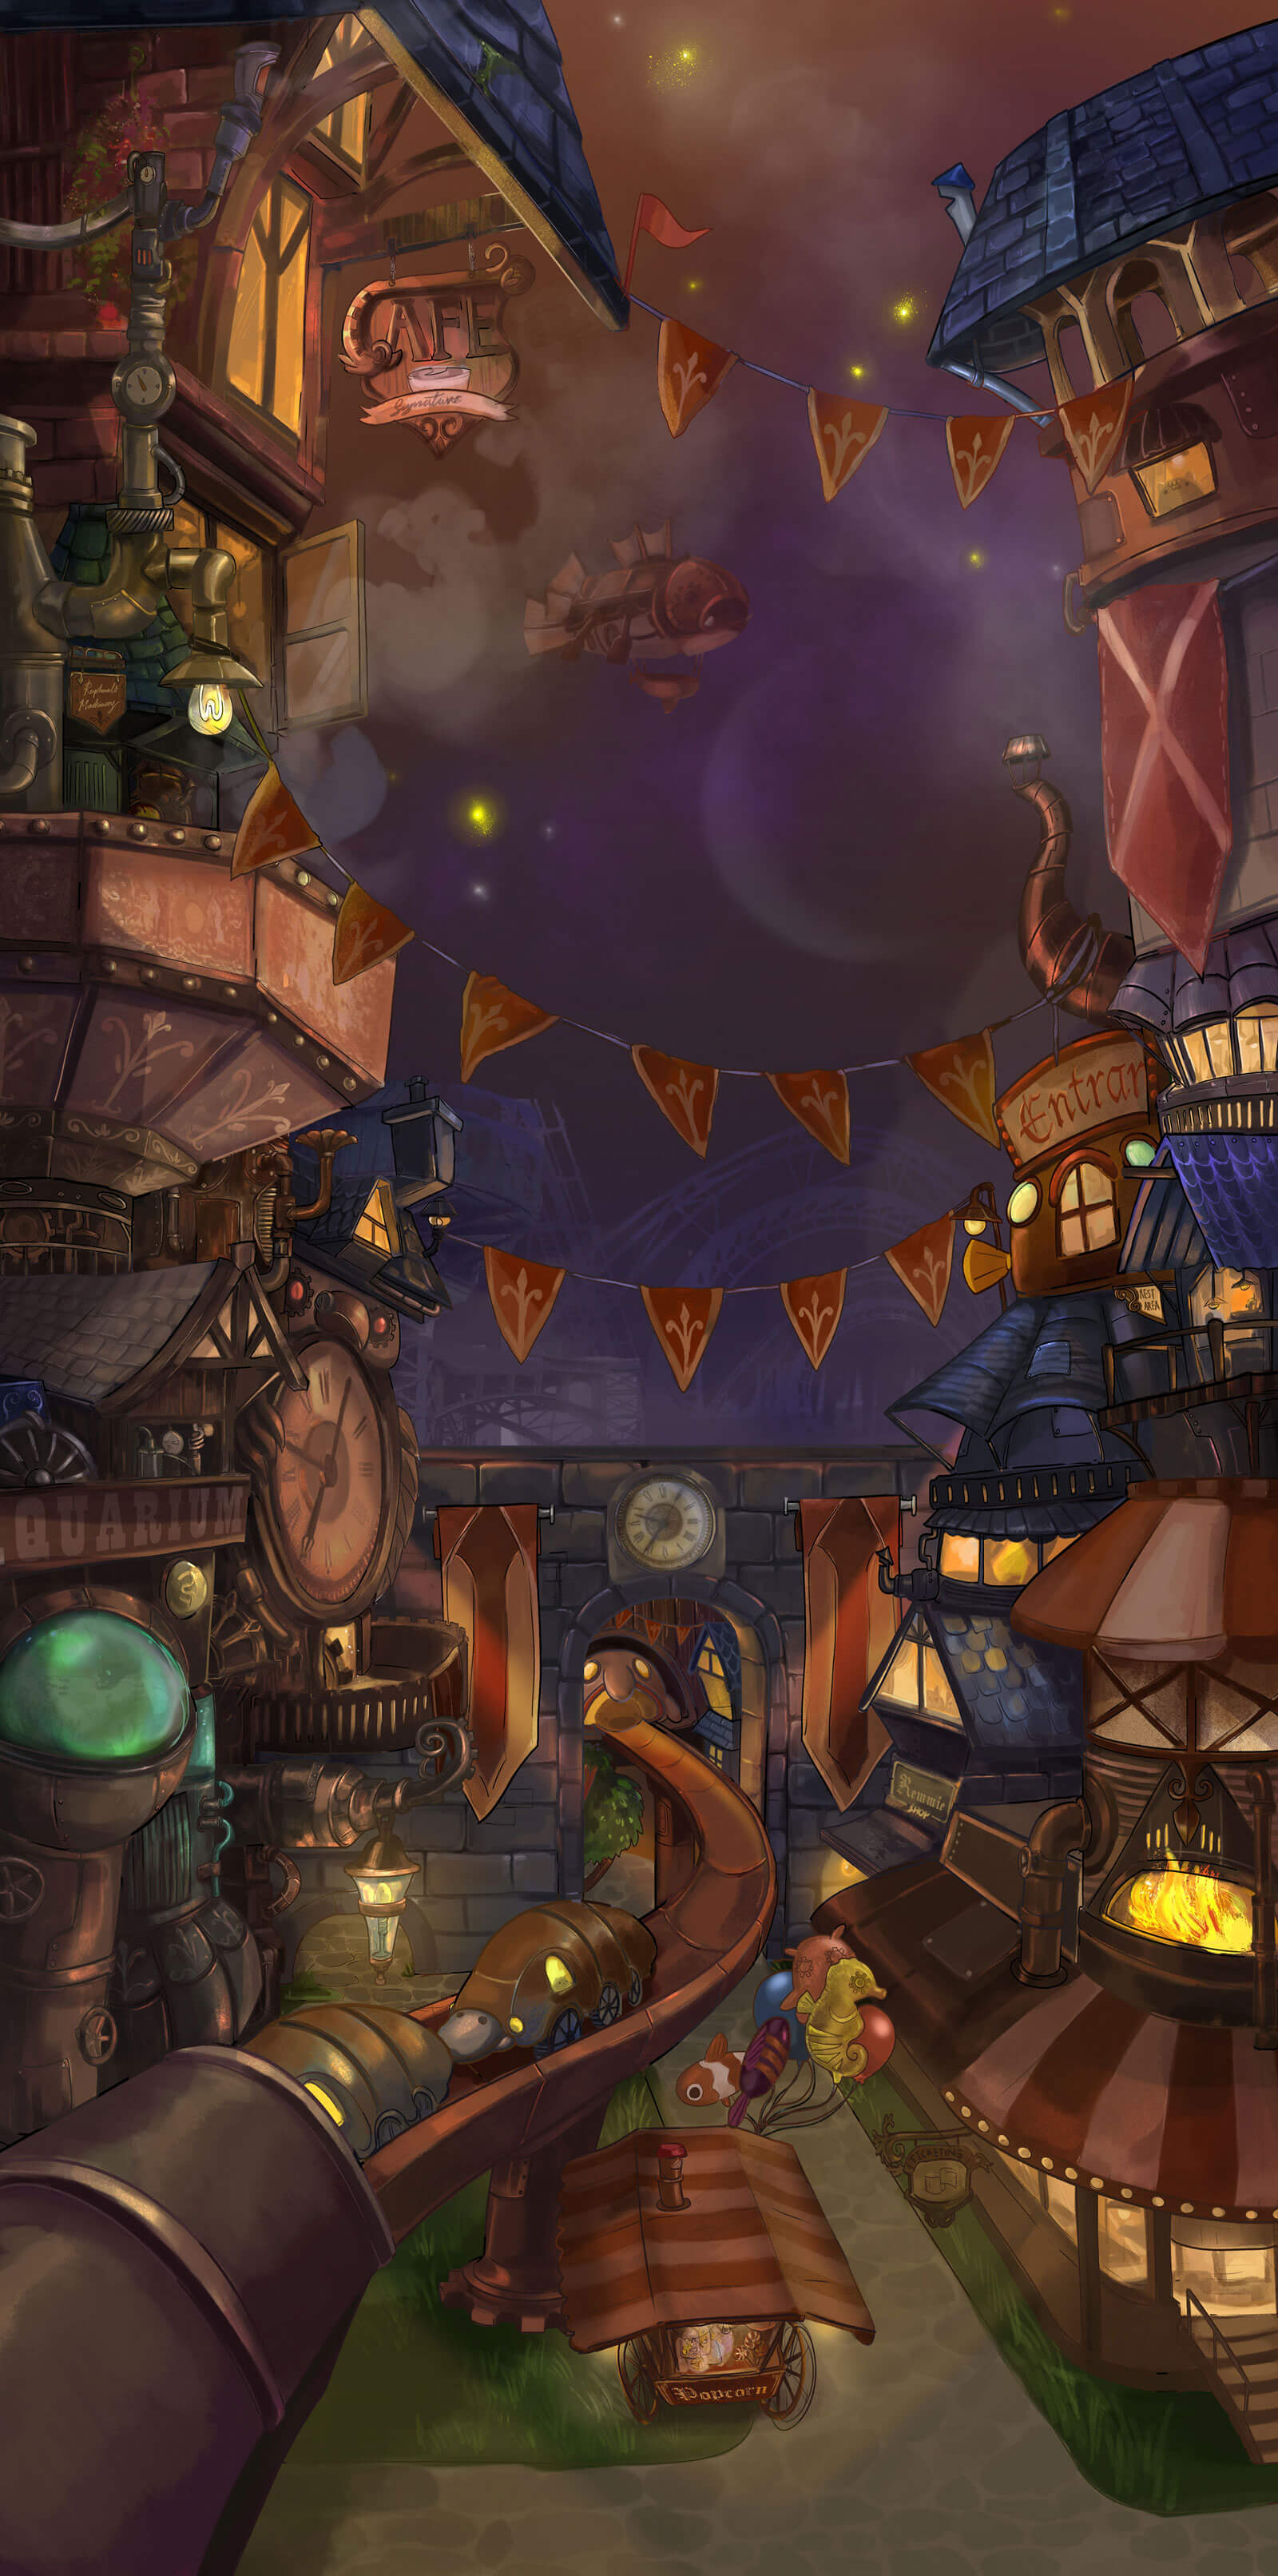 A lively, steampunk-style city scene at night.